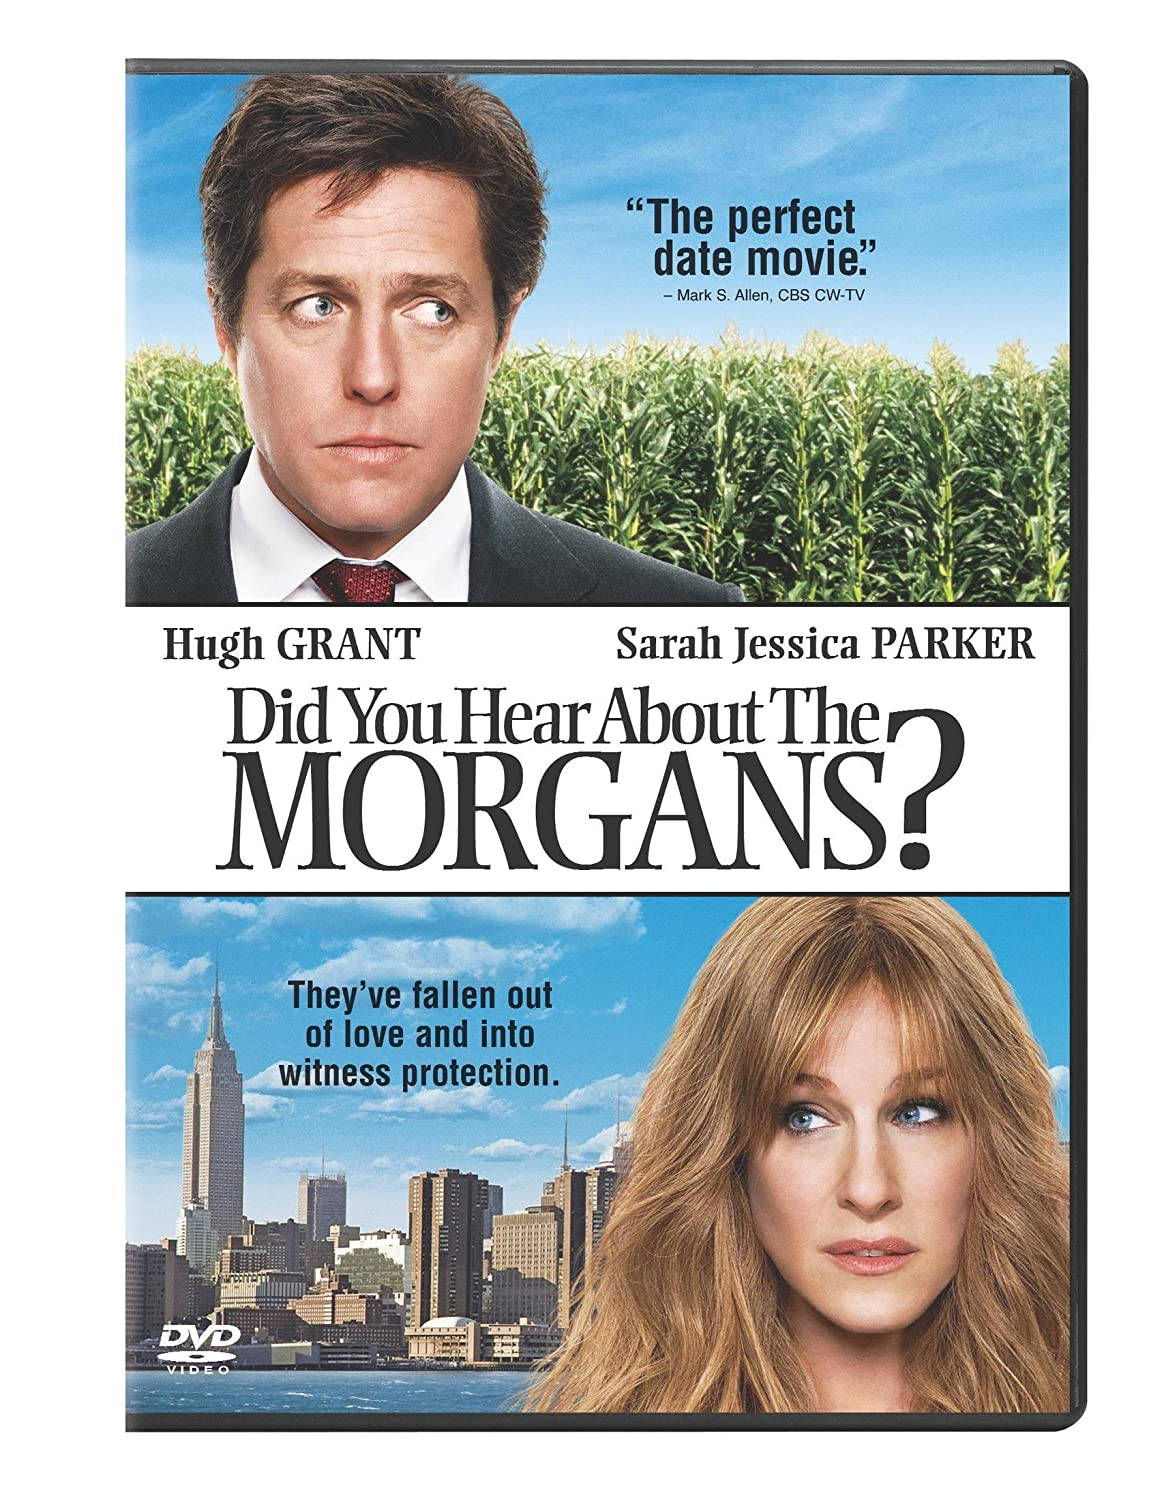 Did You Hear About The Morgans Sarah Jessica Parker Hugh Grant Mary Steenburgen Sam Elliott Elisabeth Moss Marc Lawrence Movies Tv